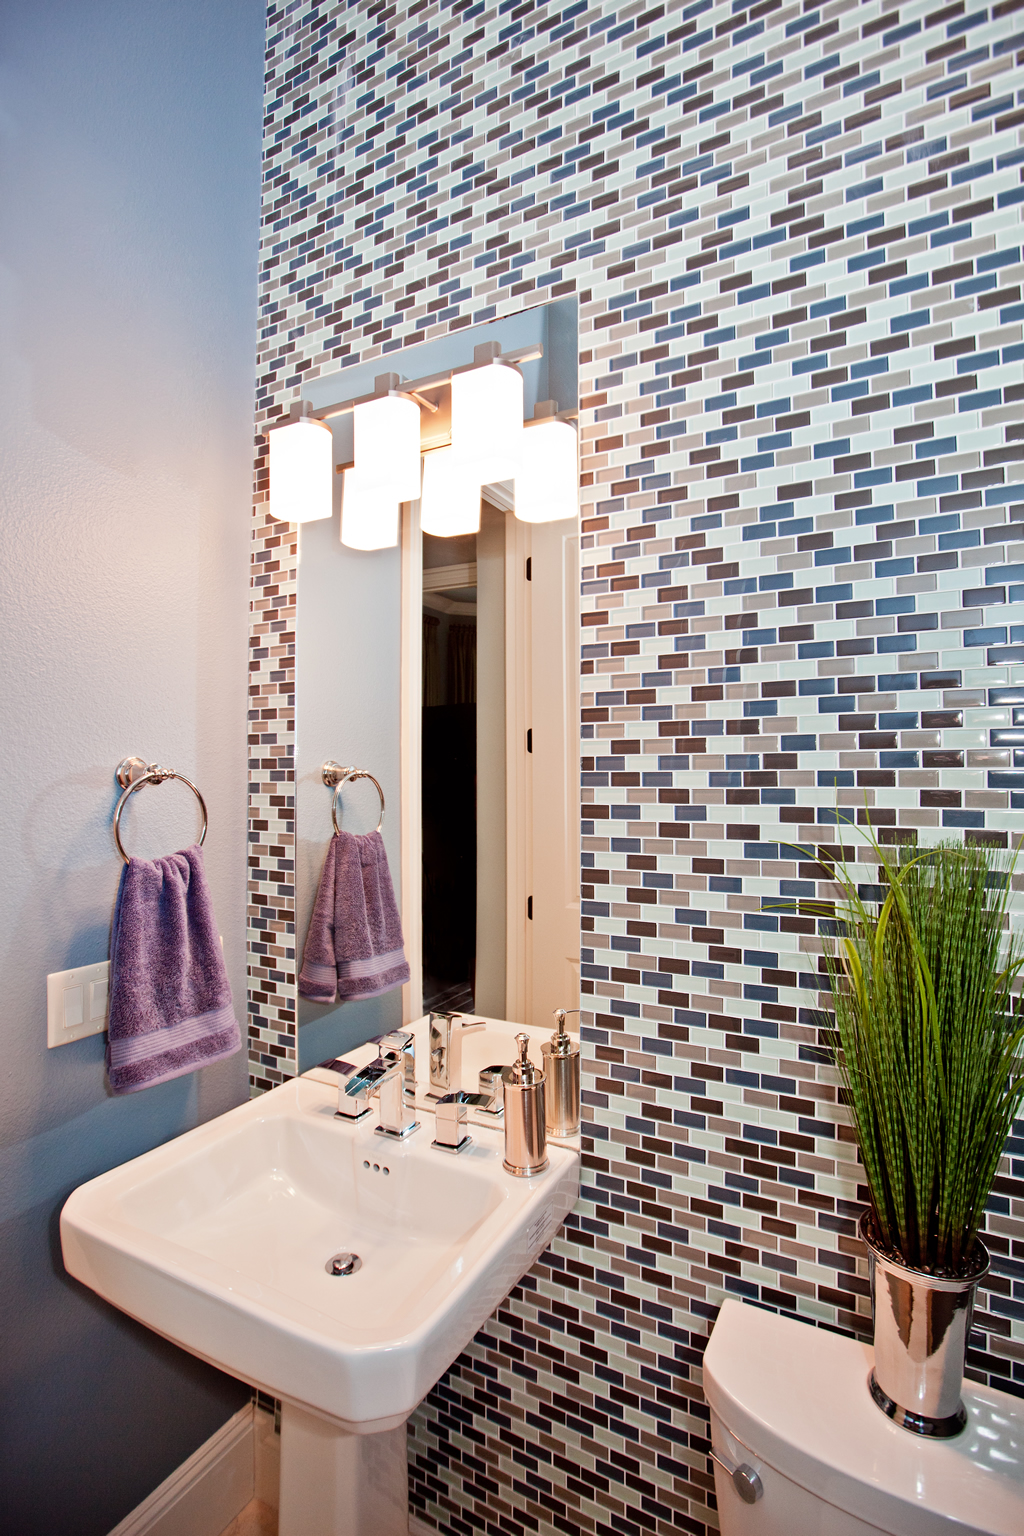 Bathroom Sink With Multi Colored Tiled Wall